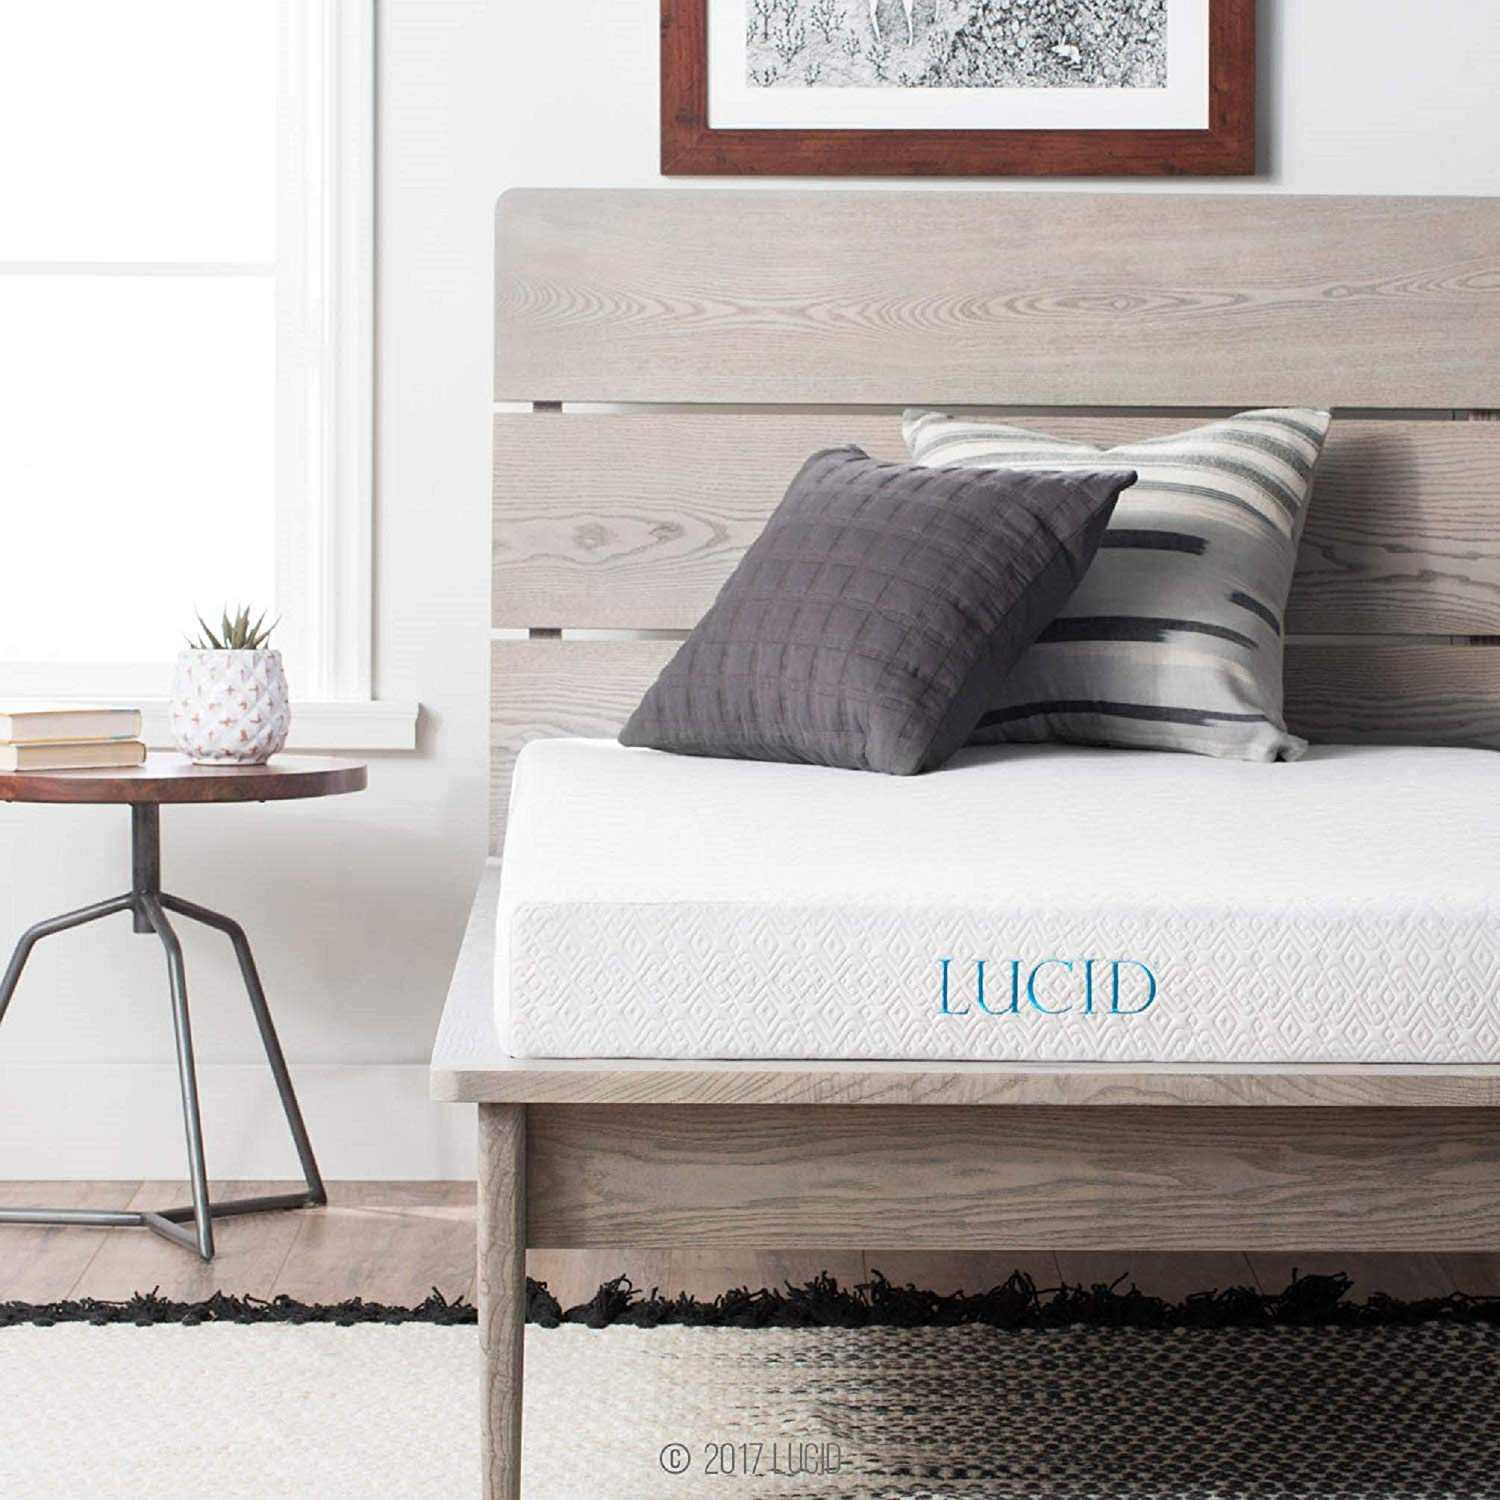 LUCID gel memory foam mattress topratedhomeproducts